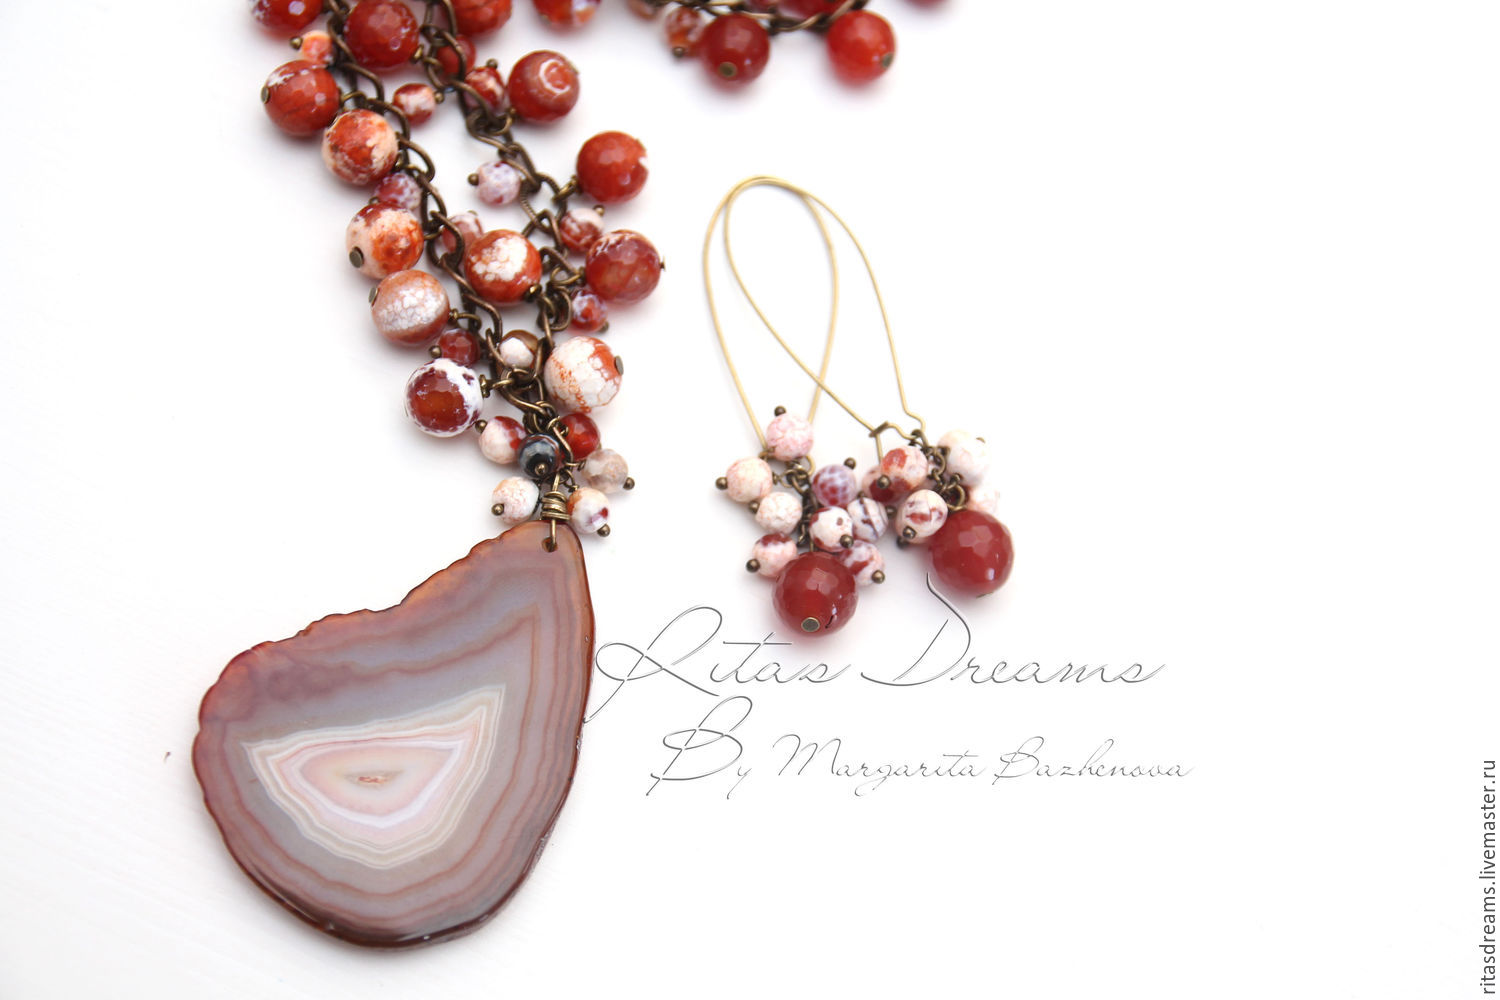 Chain necklace with large and small faceted beads of agate caramel and honey shades with a large agate slice in the center.